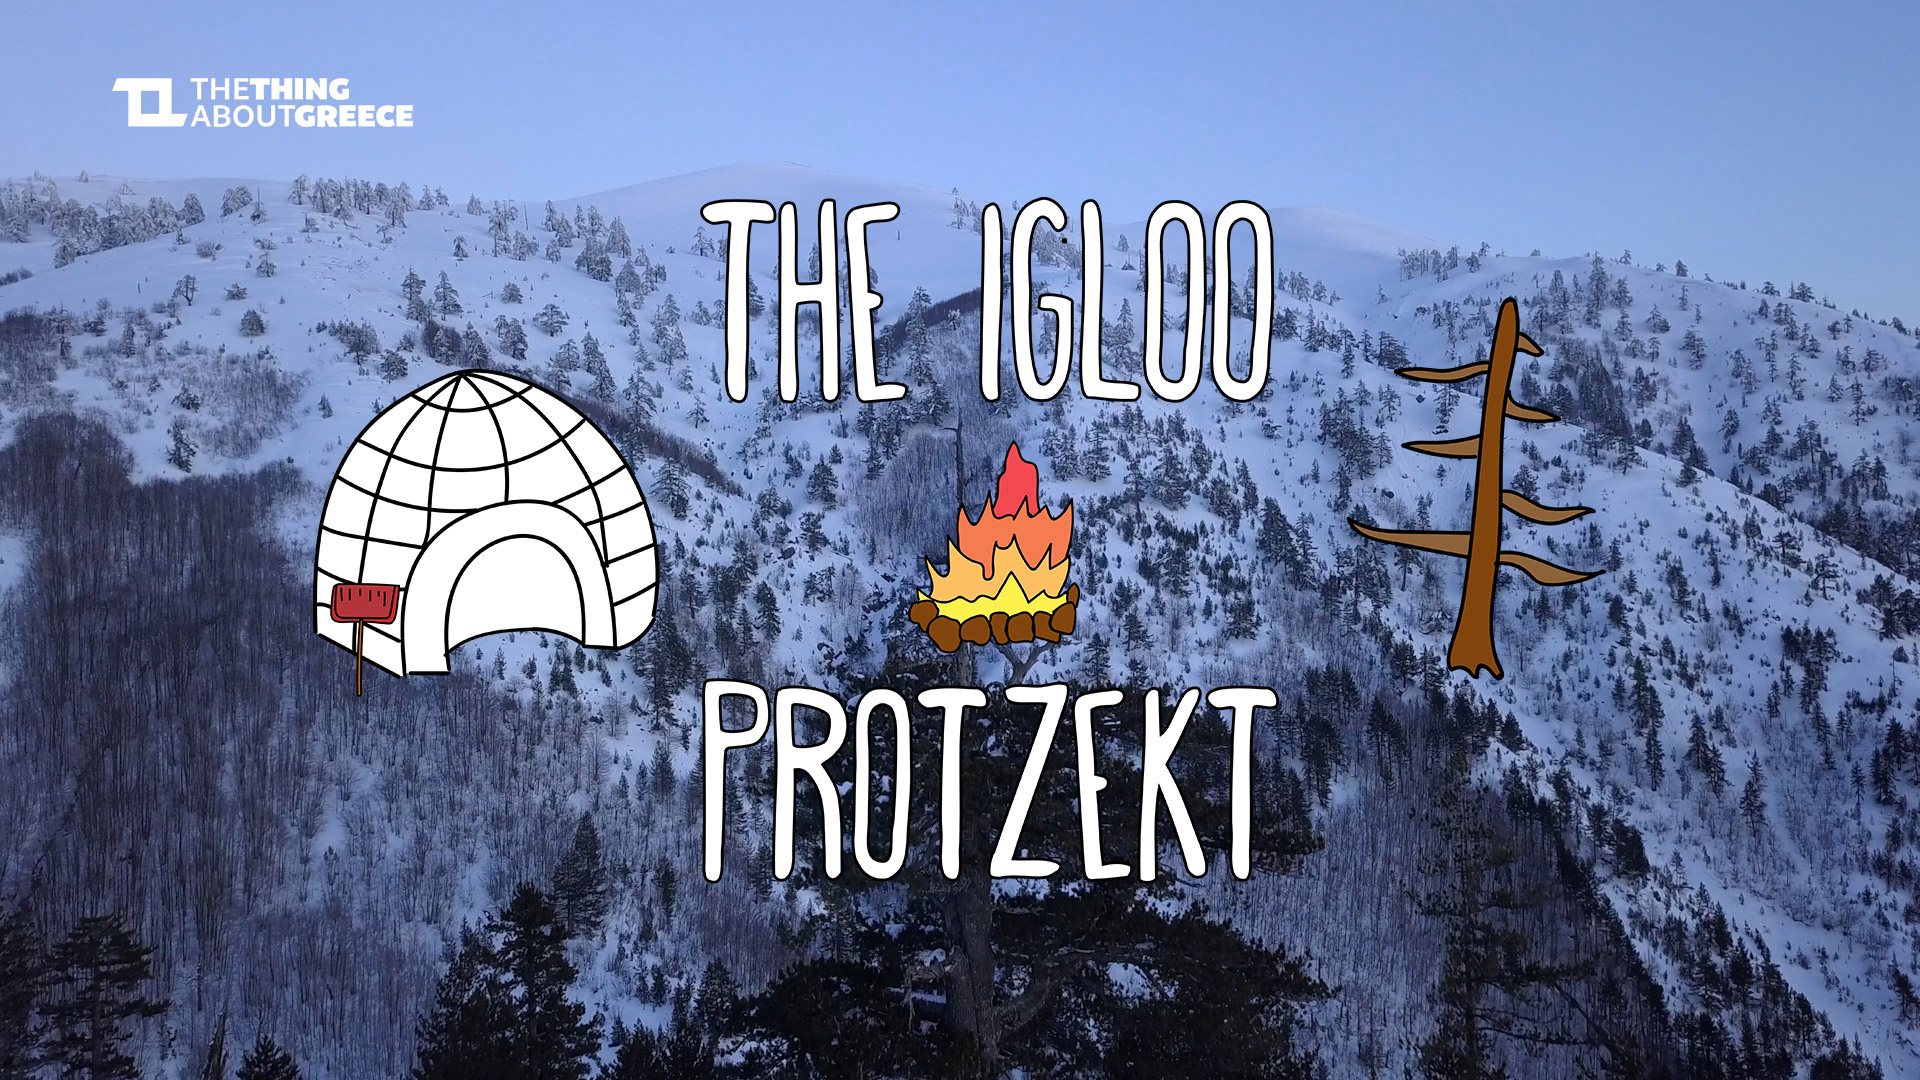 THE IGLOO PROTZEKT – 2 Weeks of Pure Outdoors in Vasilitsa